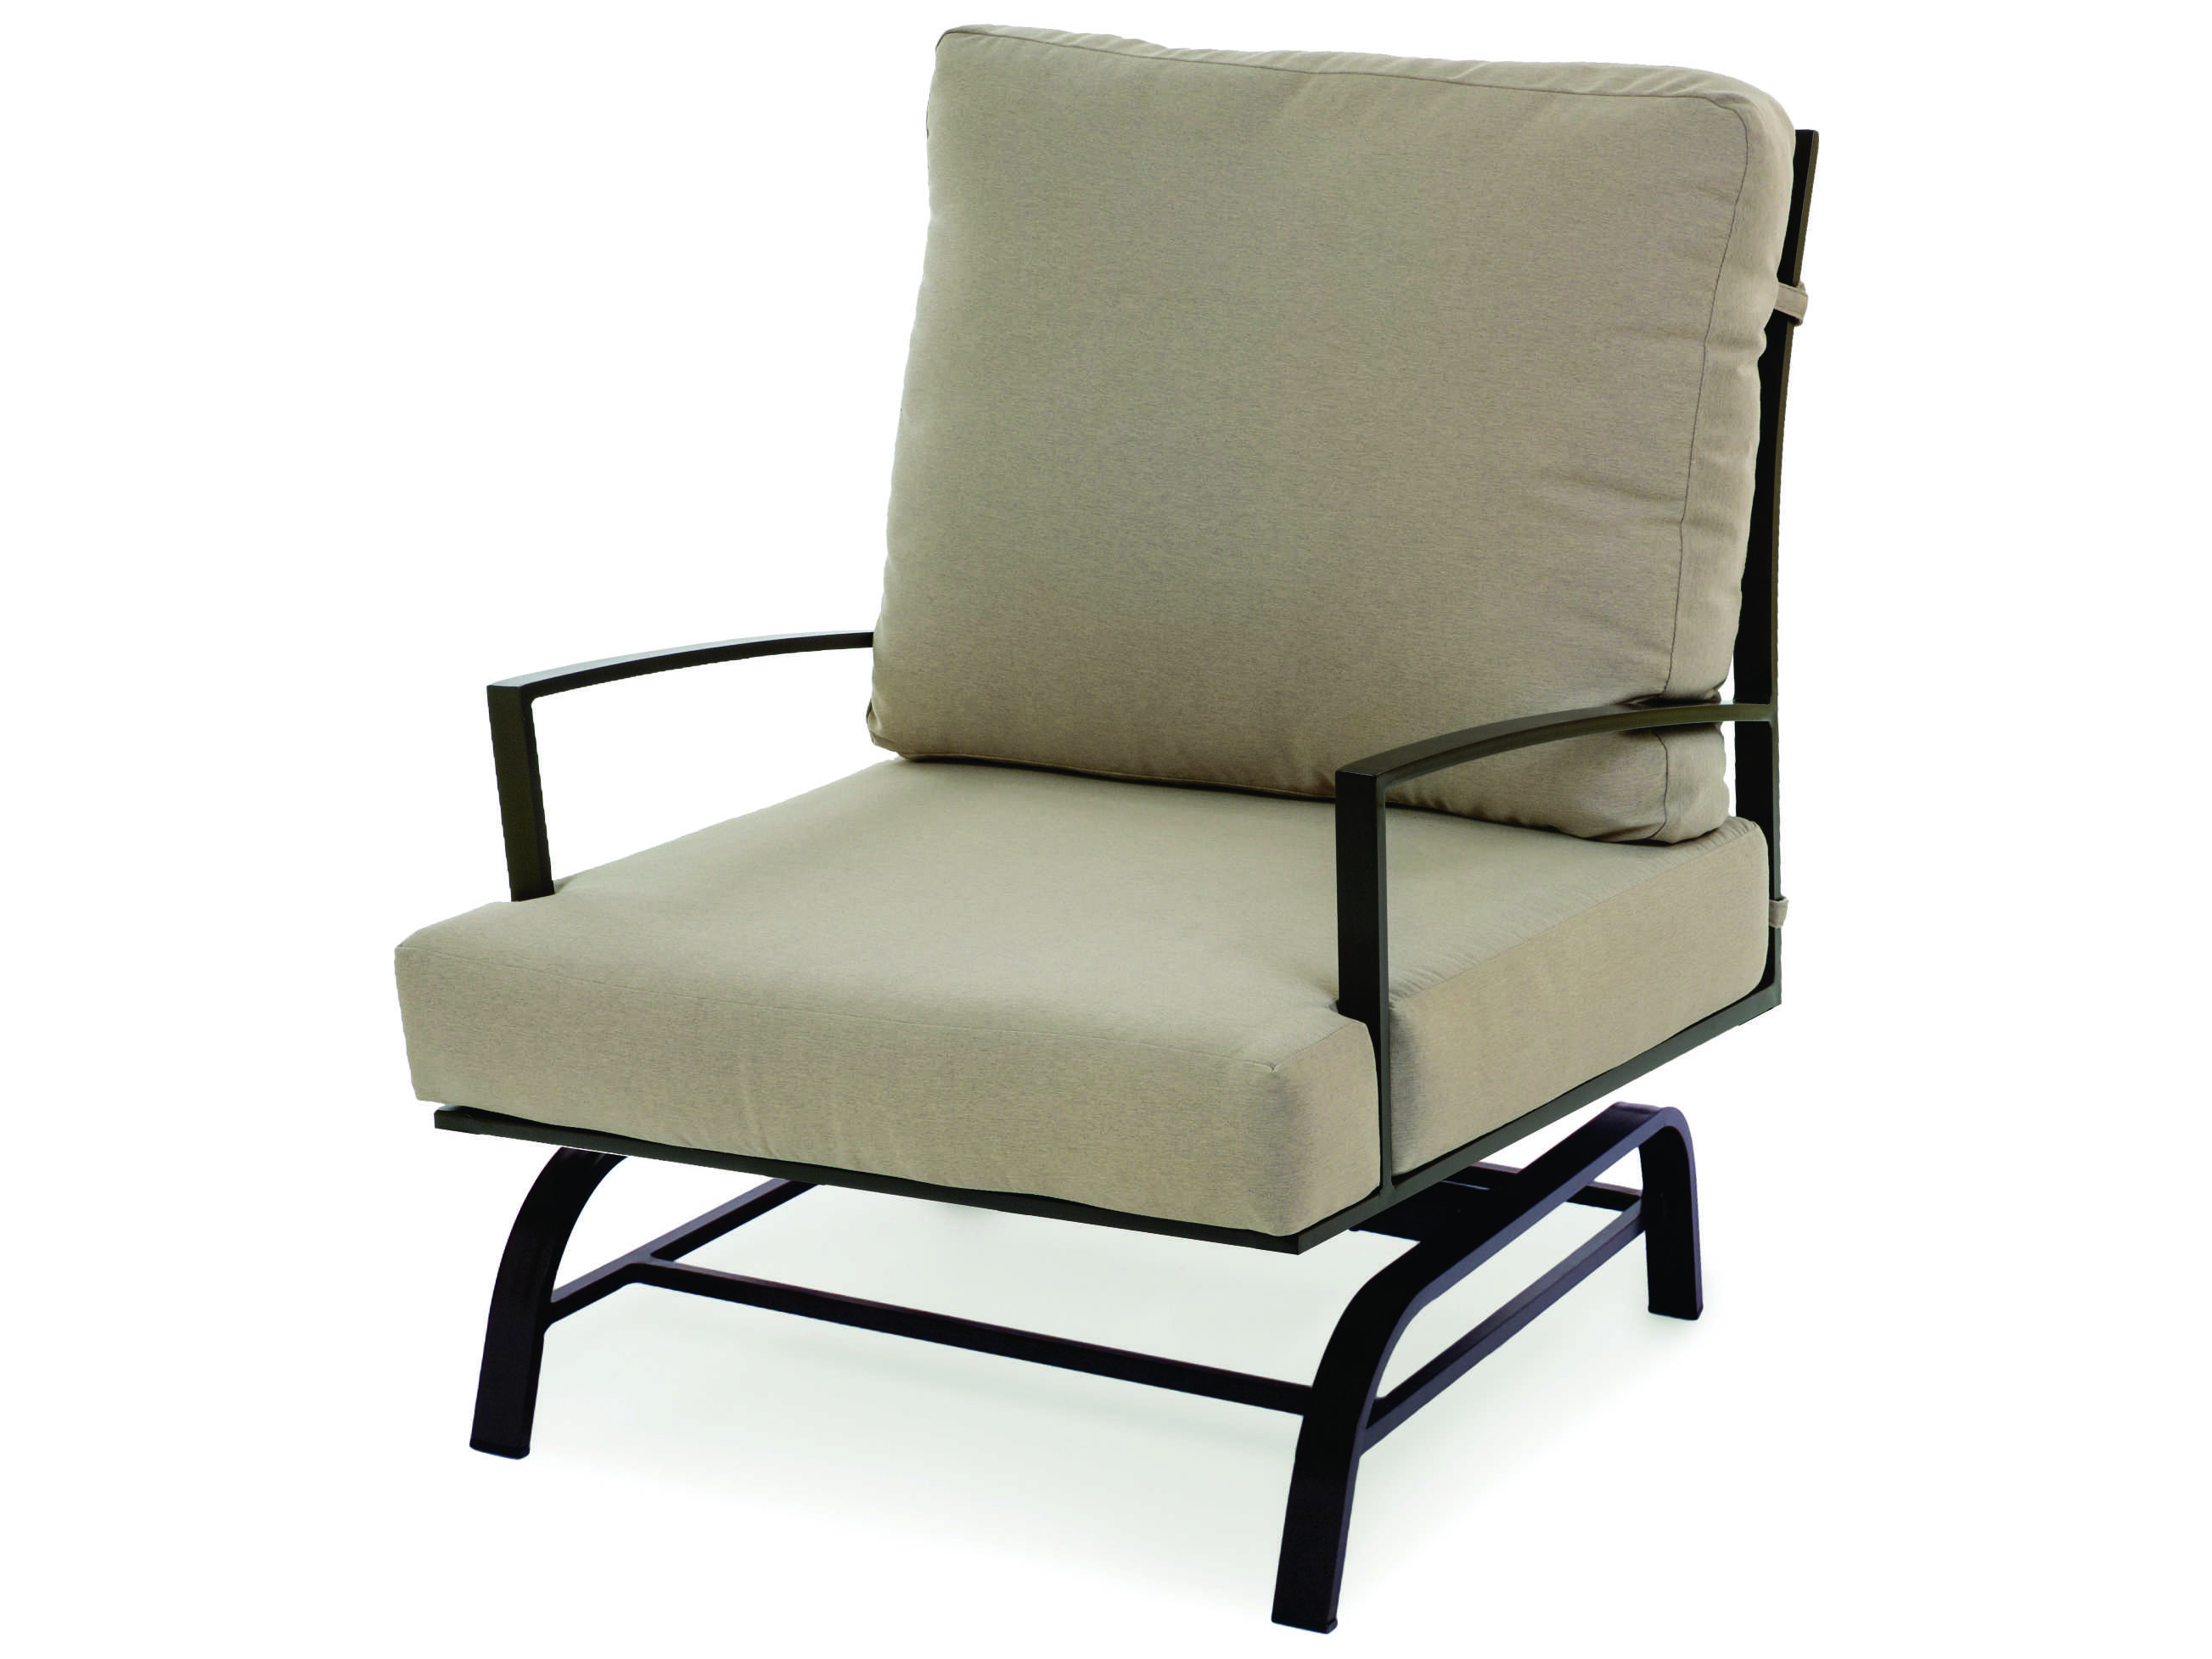 cushions for glider chairs hover round caluco san michele aluminum cushion arm lounge